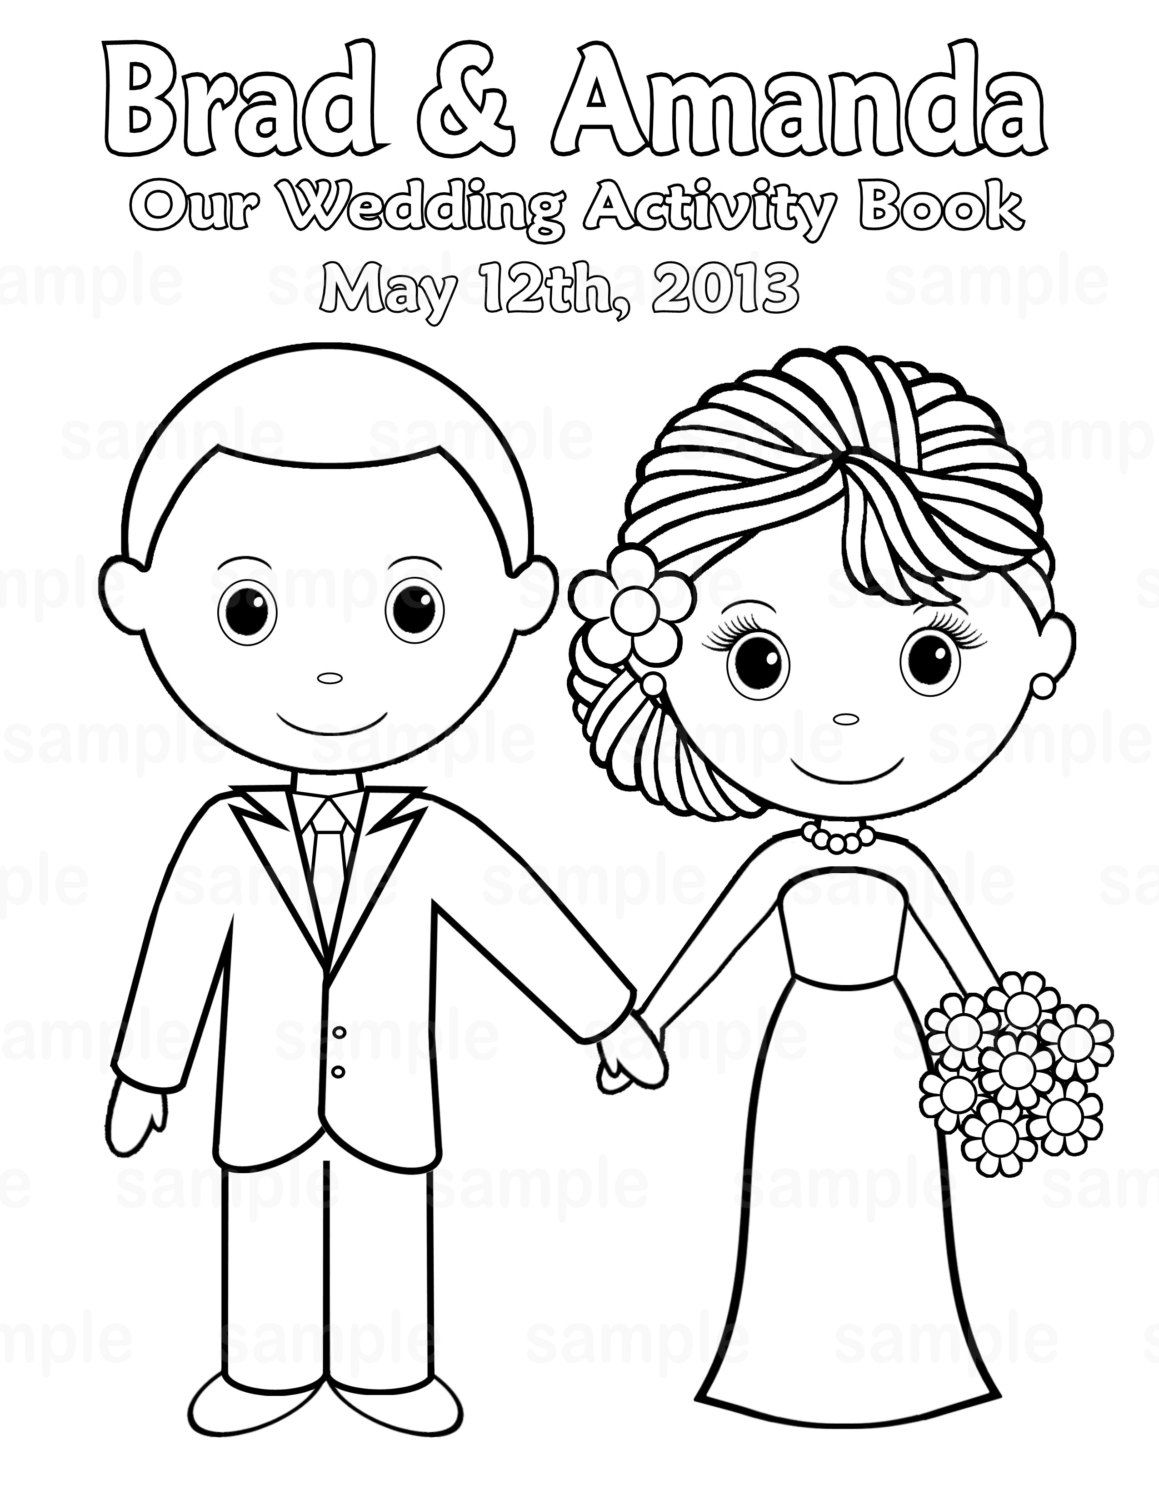 Uncategorized Free Wedding Coloring Pages To Print free printable coloring pictures wedding personalized activity book favor kids 8 5 x